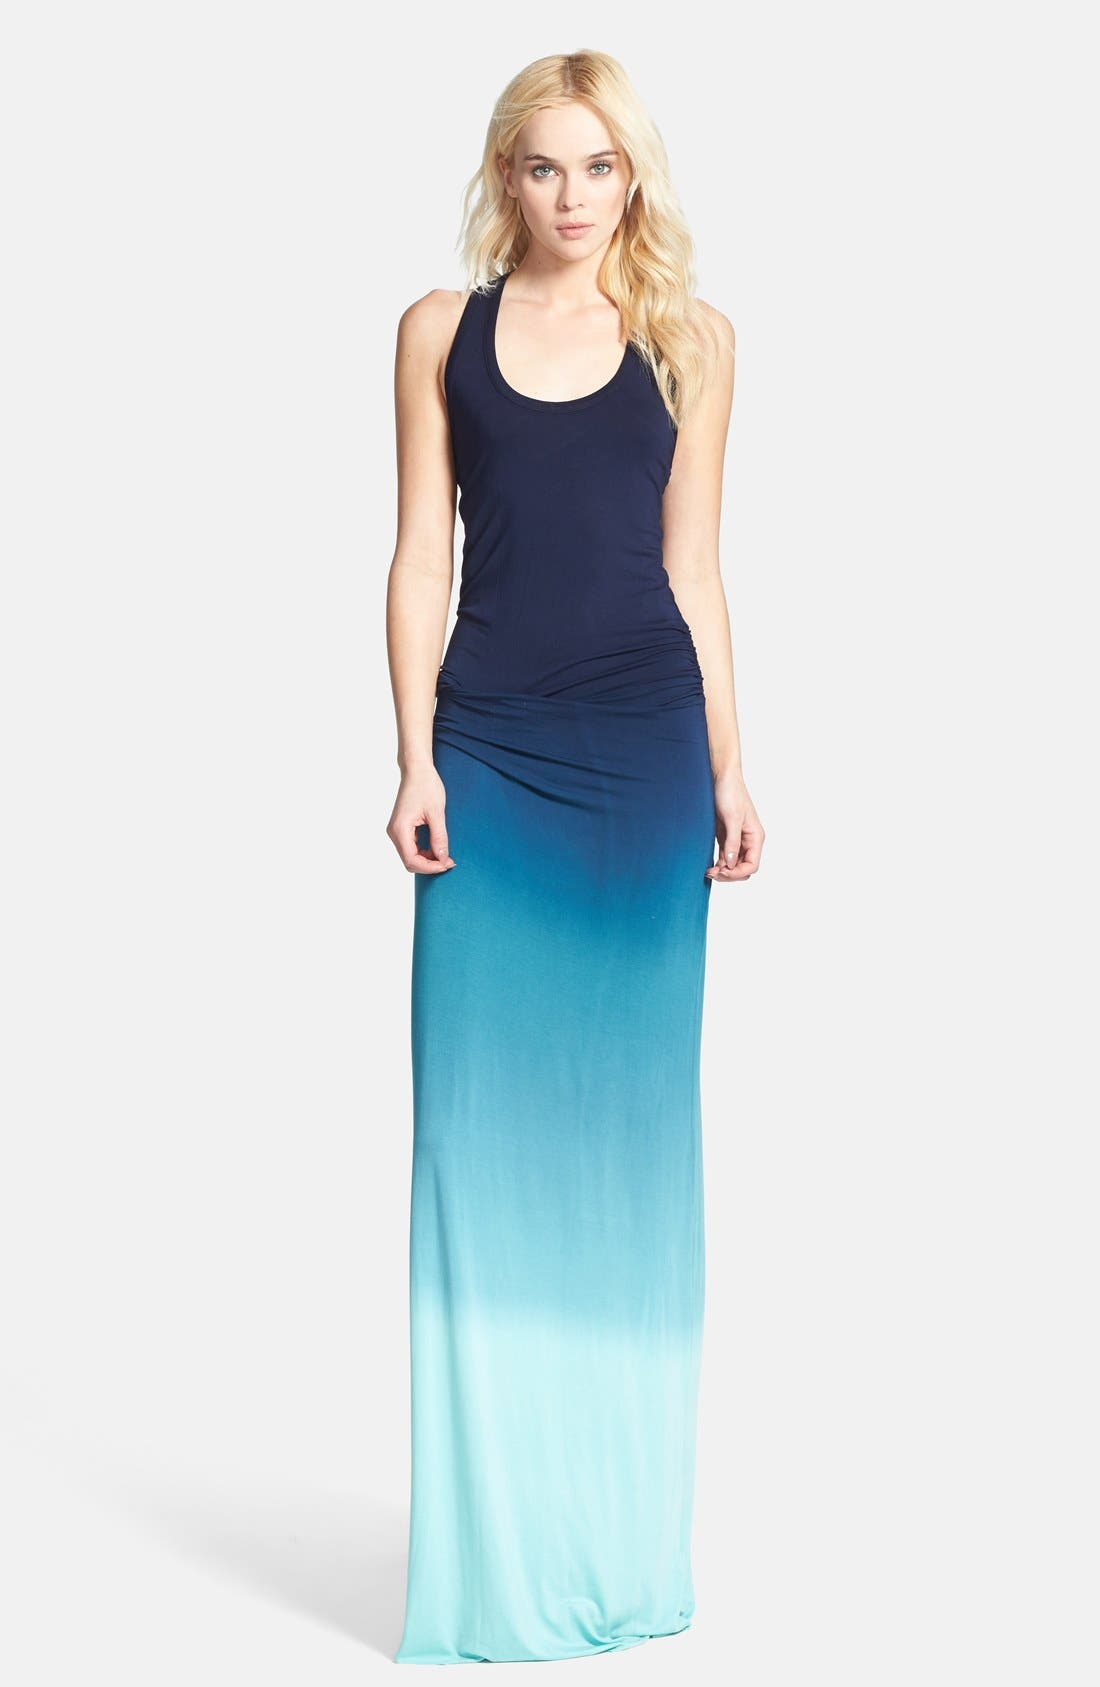 Main Image - Young, Fabulous & Broke 'Hamptons' Racerback Jersey Maxi Dress